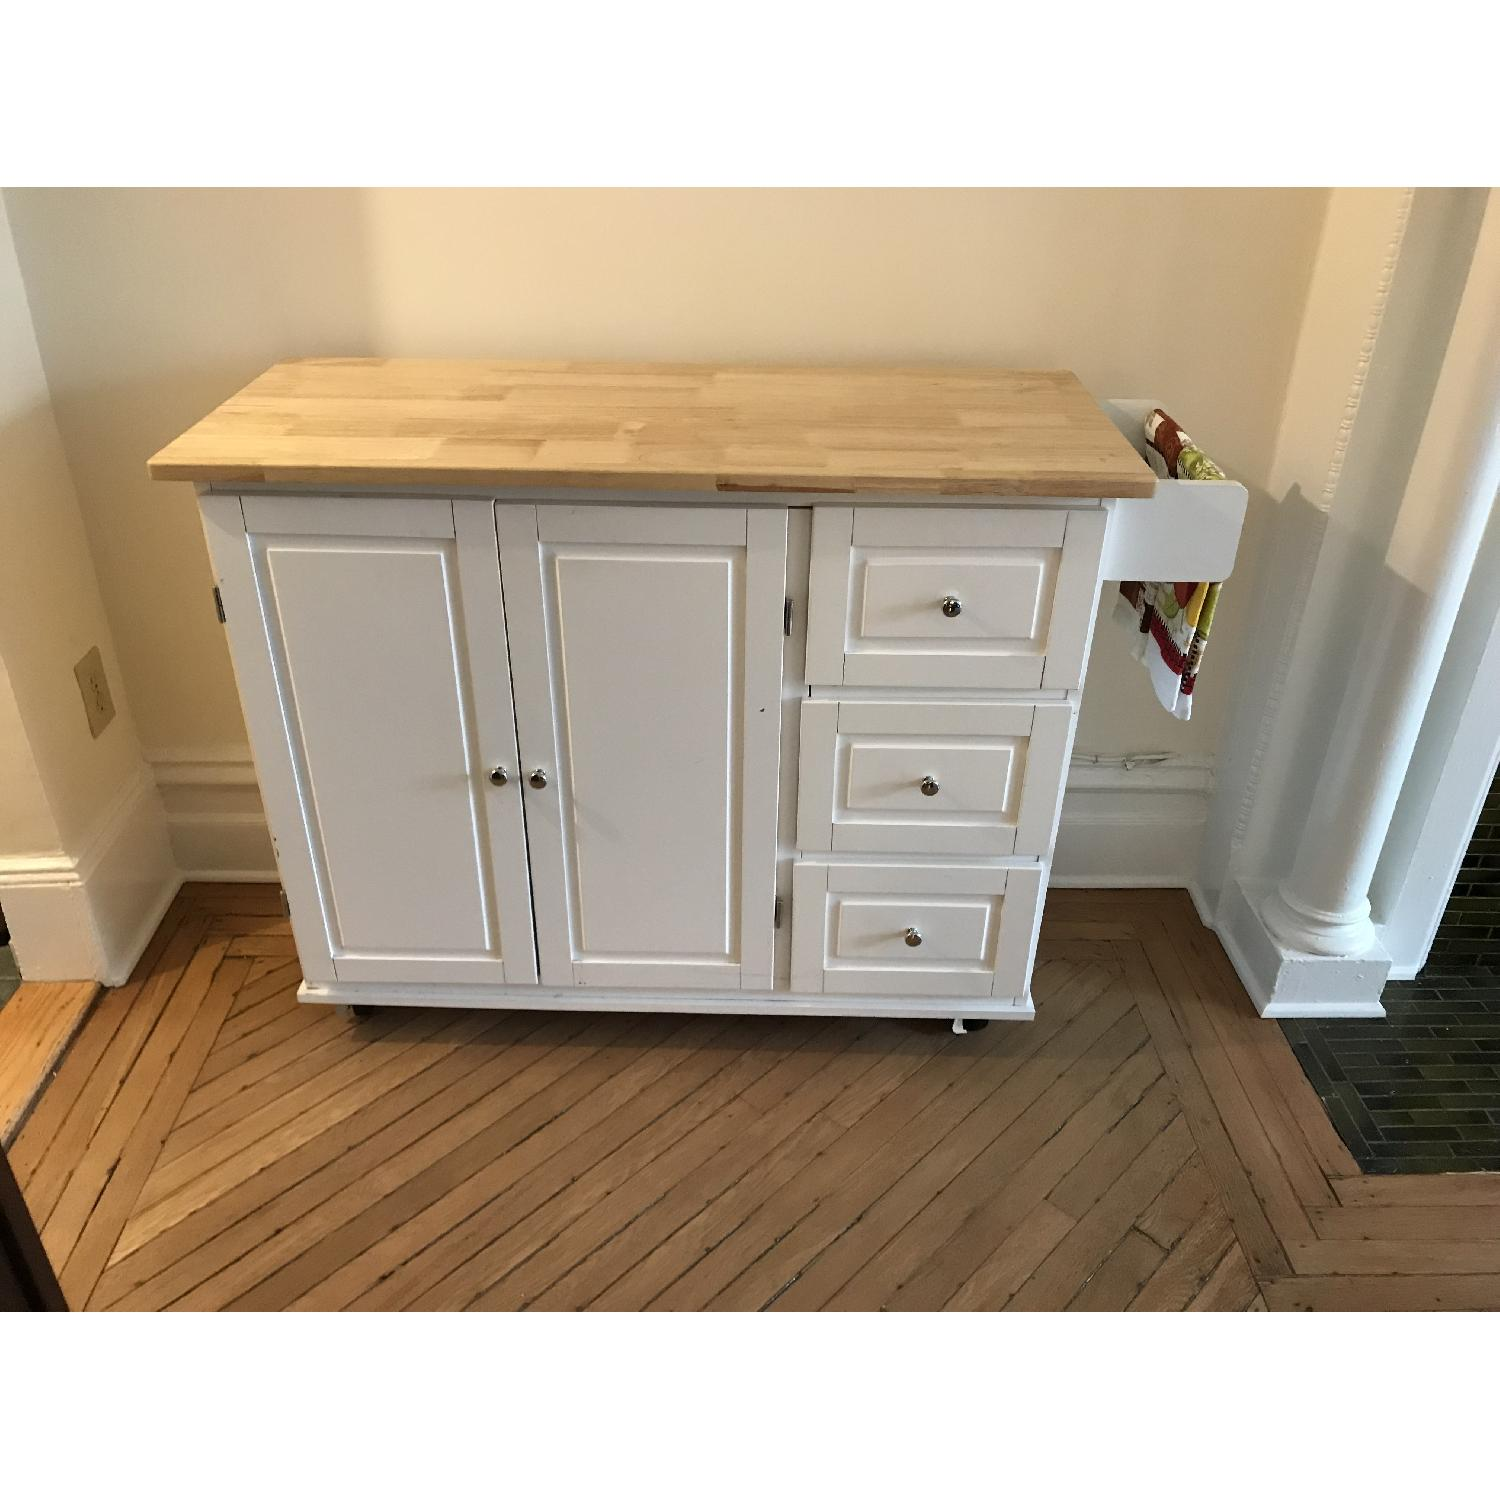 Arpdale Kitchen Island w/ Natural Wood Top-0